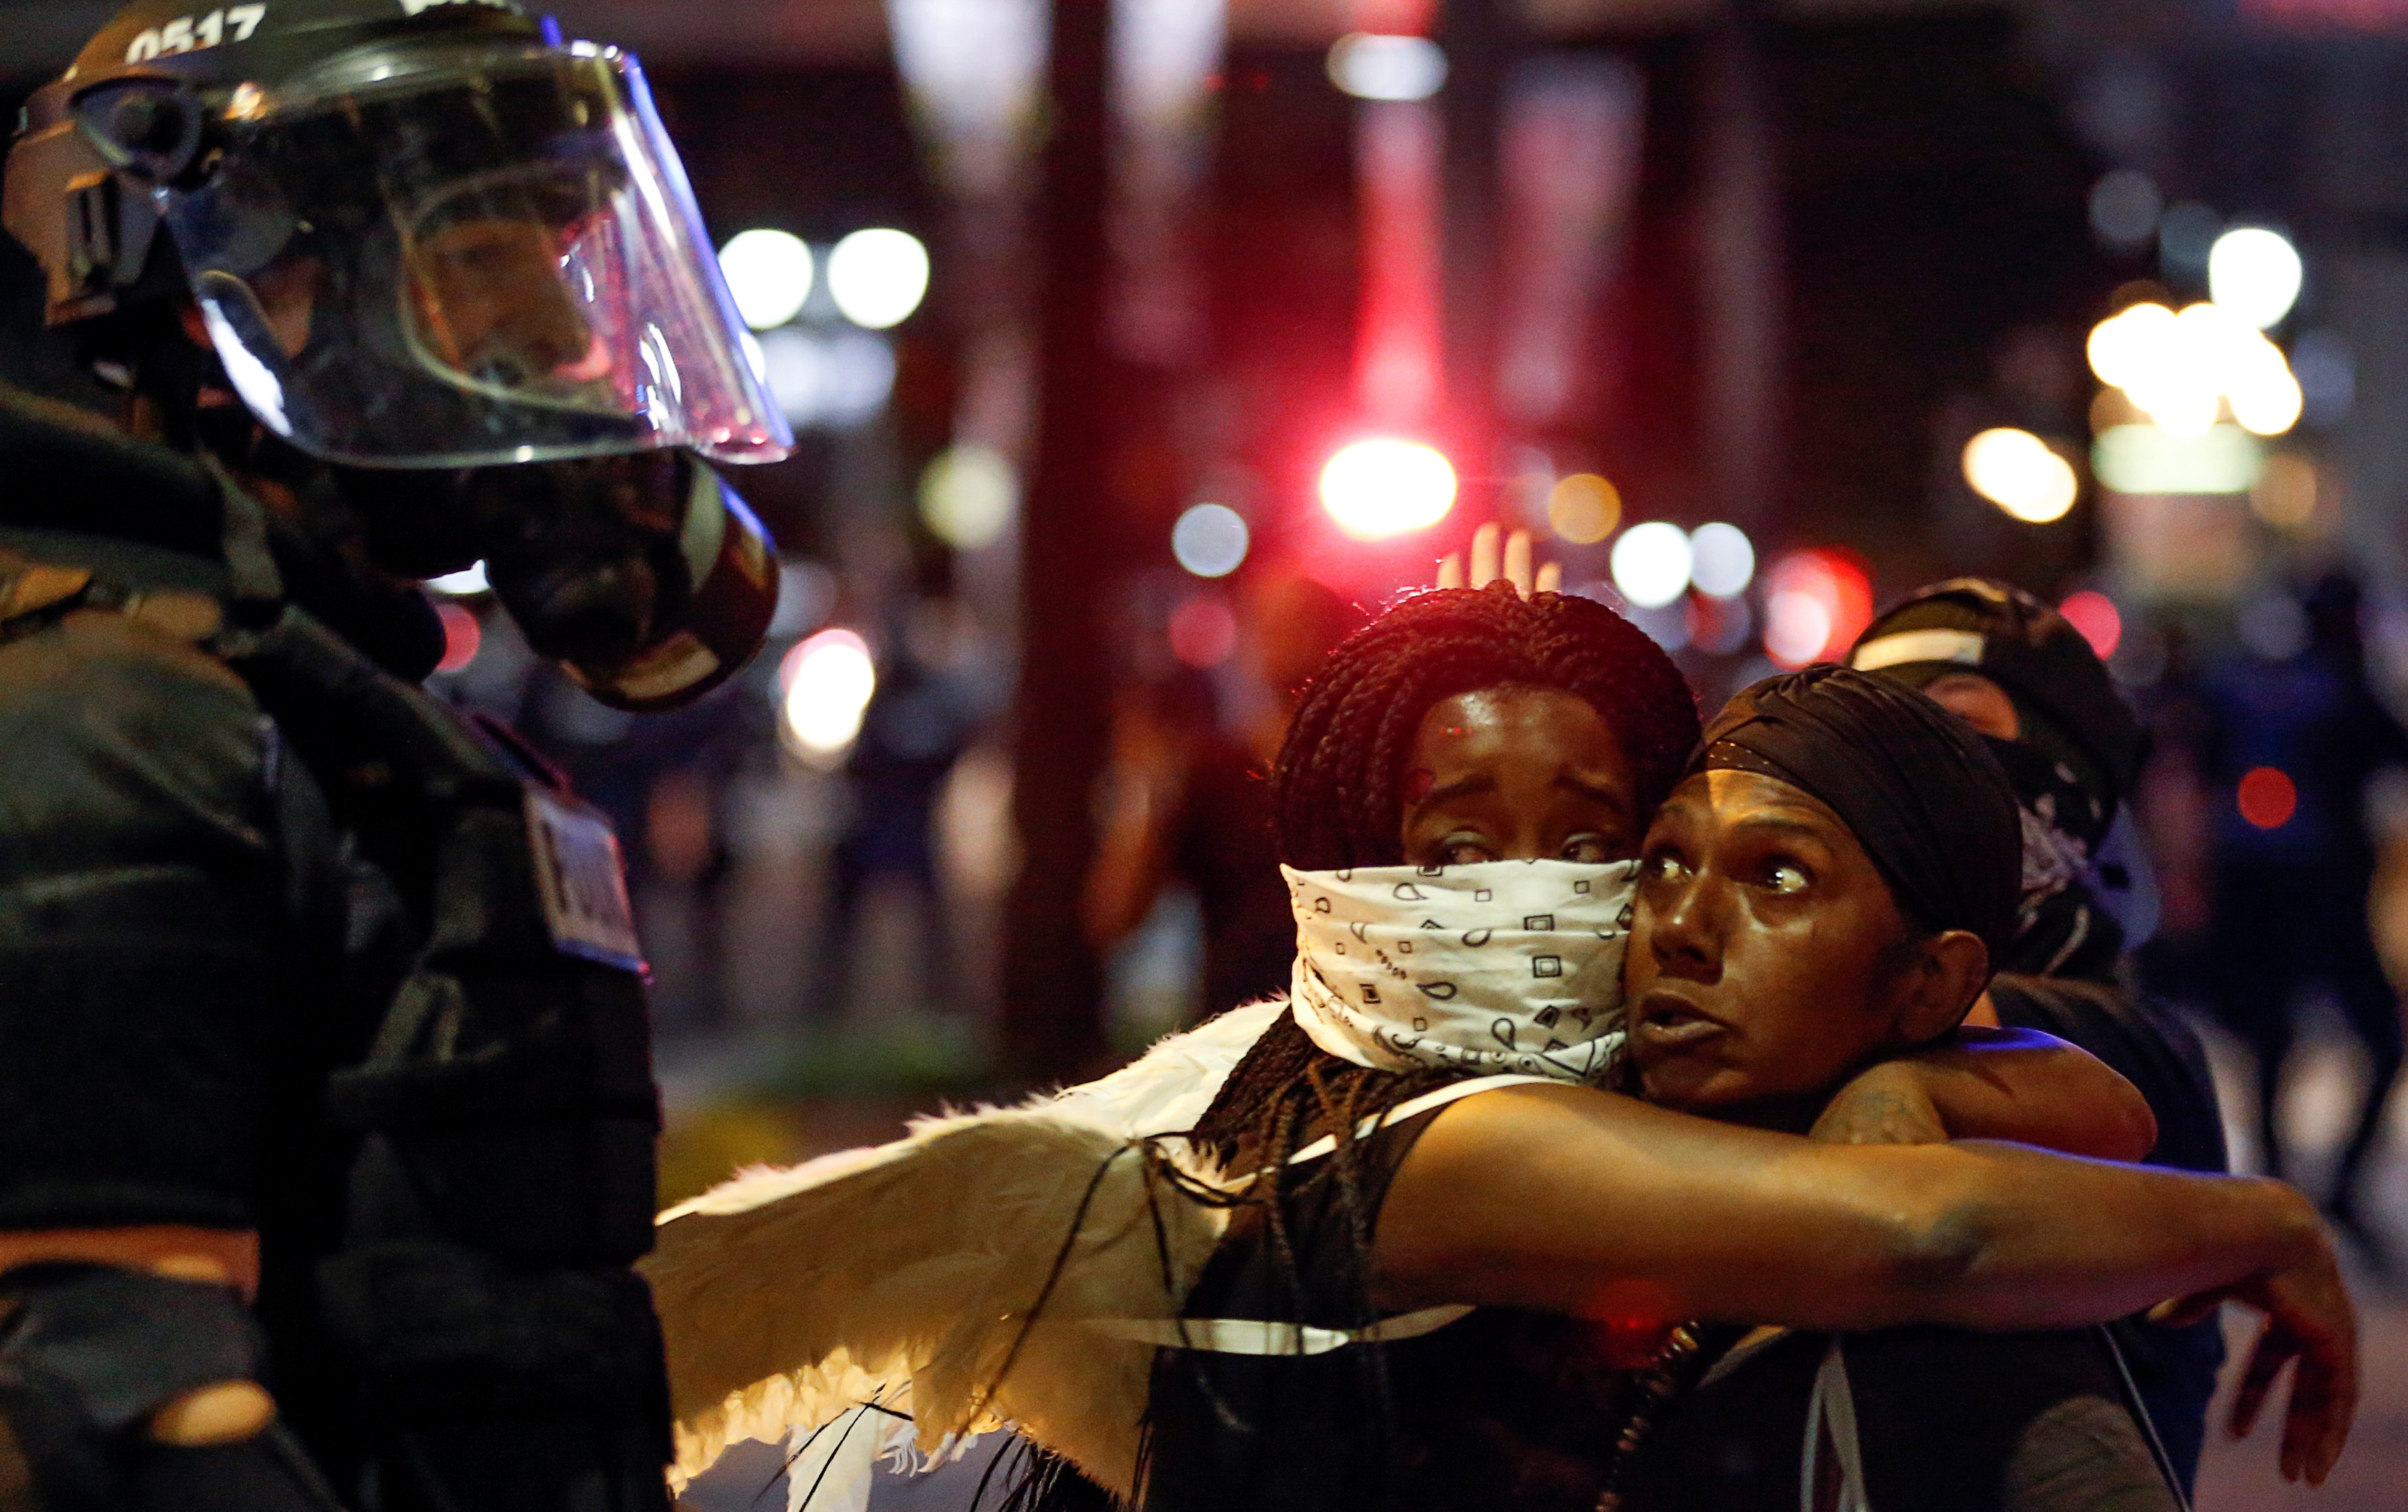 Two women embrace while looking at a police officer in uptown Charlotte, N.C. during a protest of the police shooting of Keith Scott on Sept. 21, 2016.